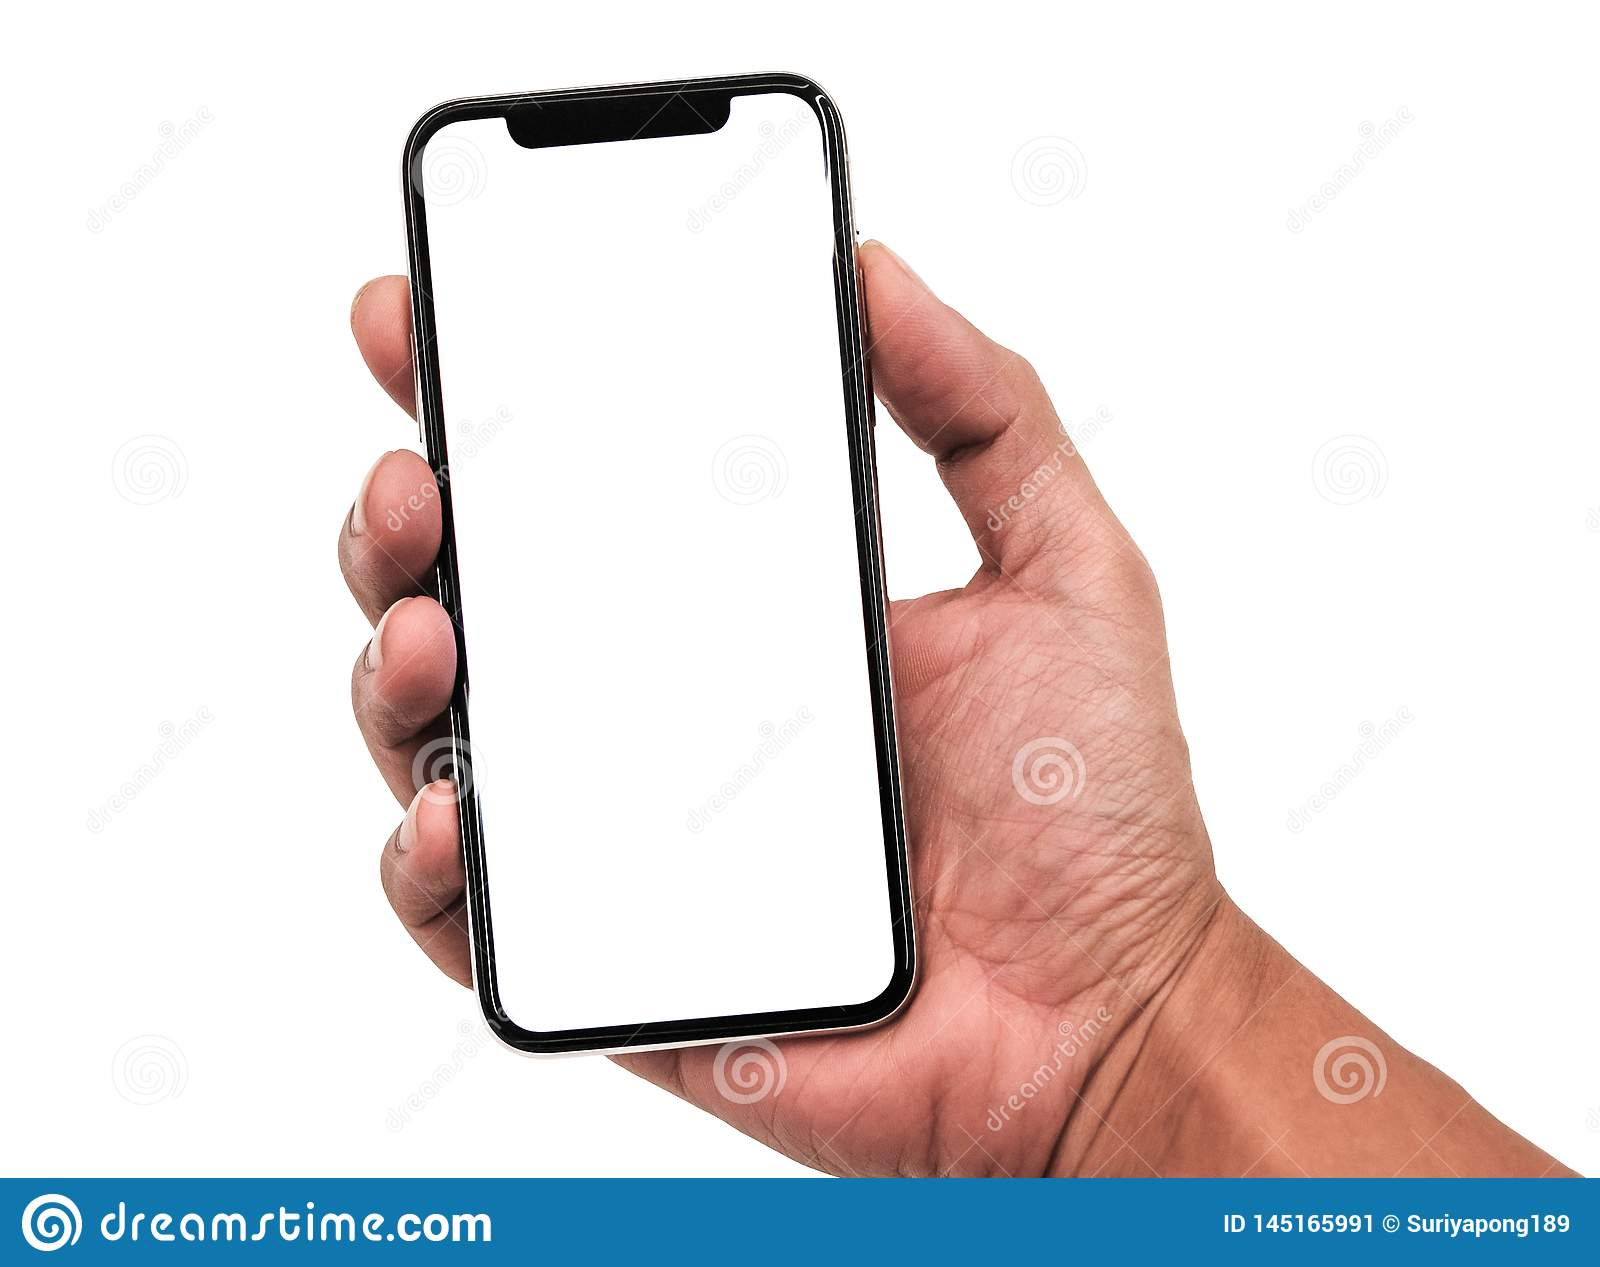 Hand holding, New version of black slim smartphone similar to iphone x